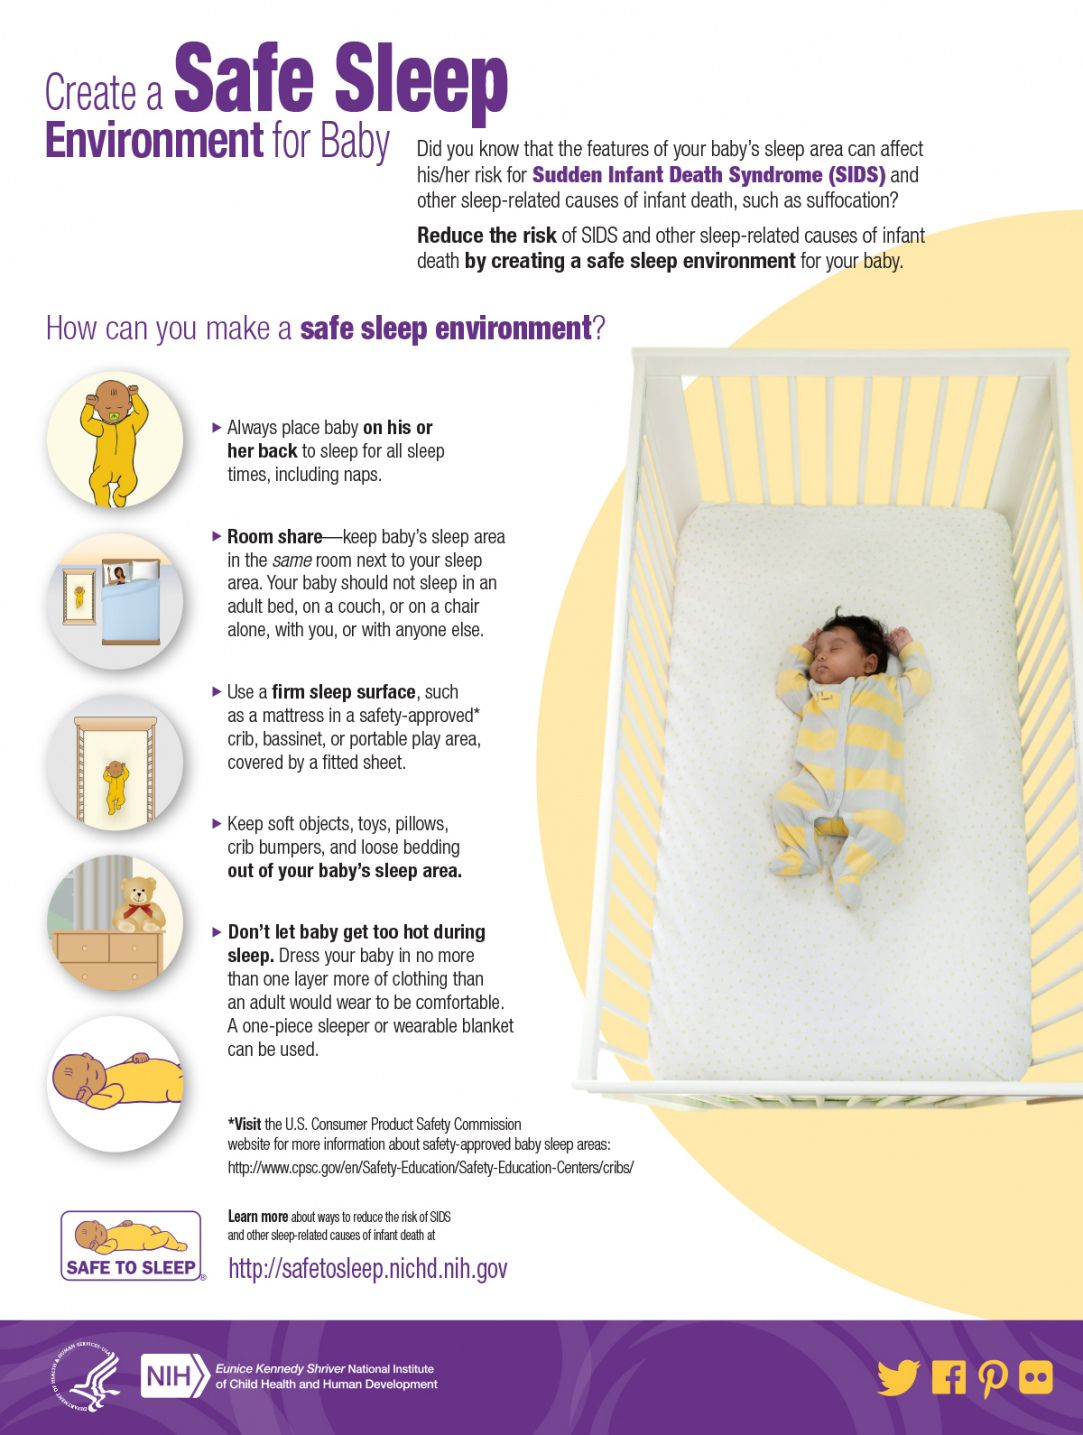 20 Room Temperature For Baby Sleeping Best Office Furniture Check More At Http Www Itscultured Com Room Tempera Baby Infographic Safe Sleep Baby Care Tips